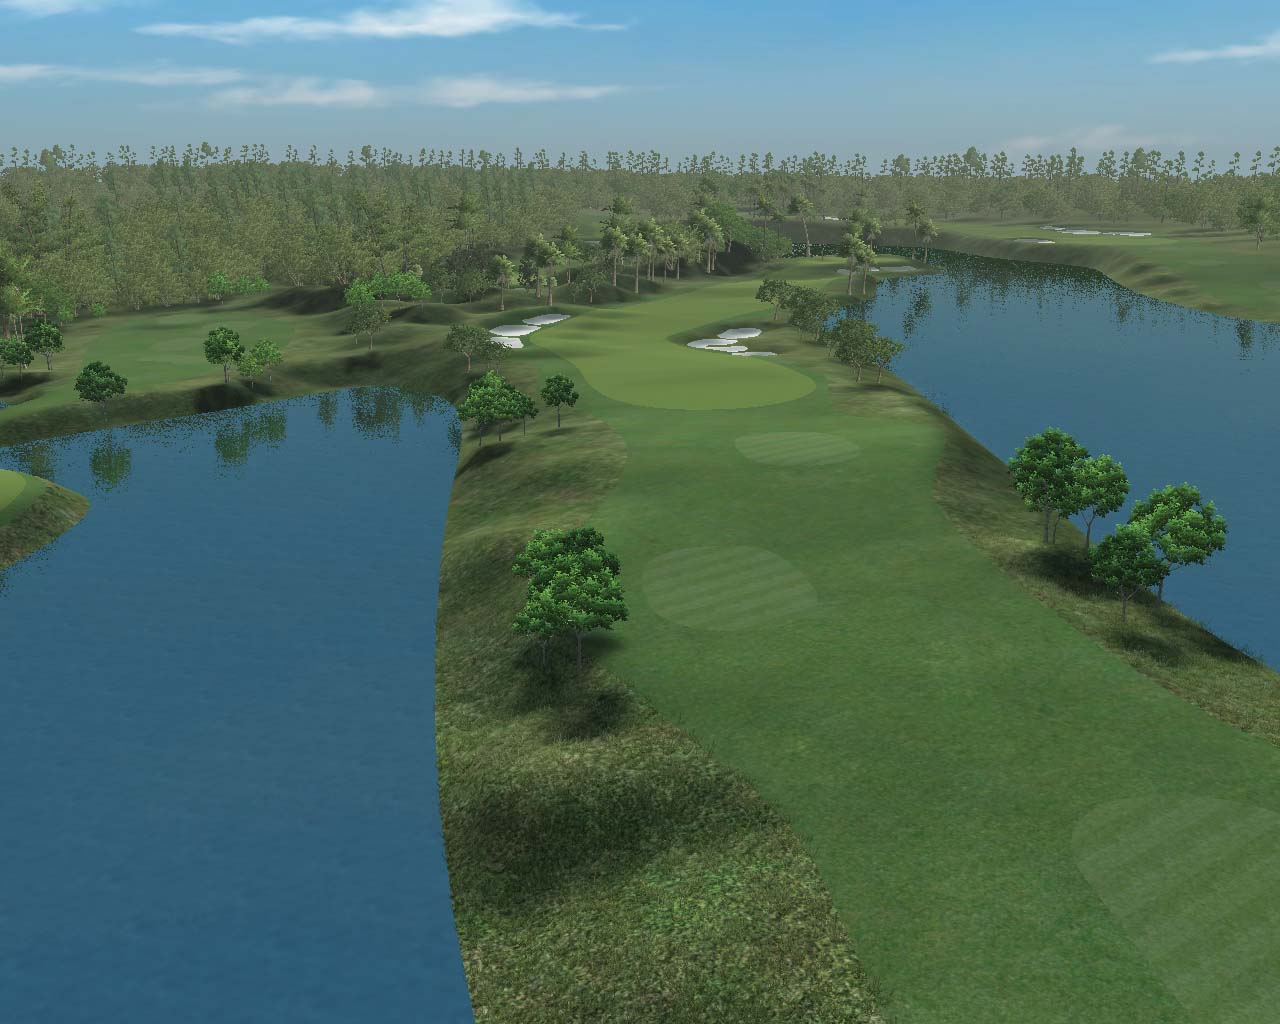 Picture of McCoale Cross Den Golf Club - click to view original size